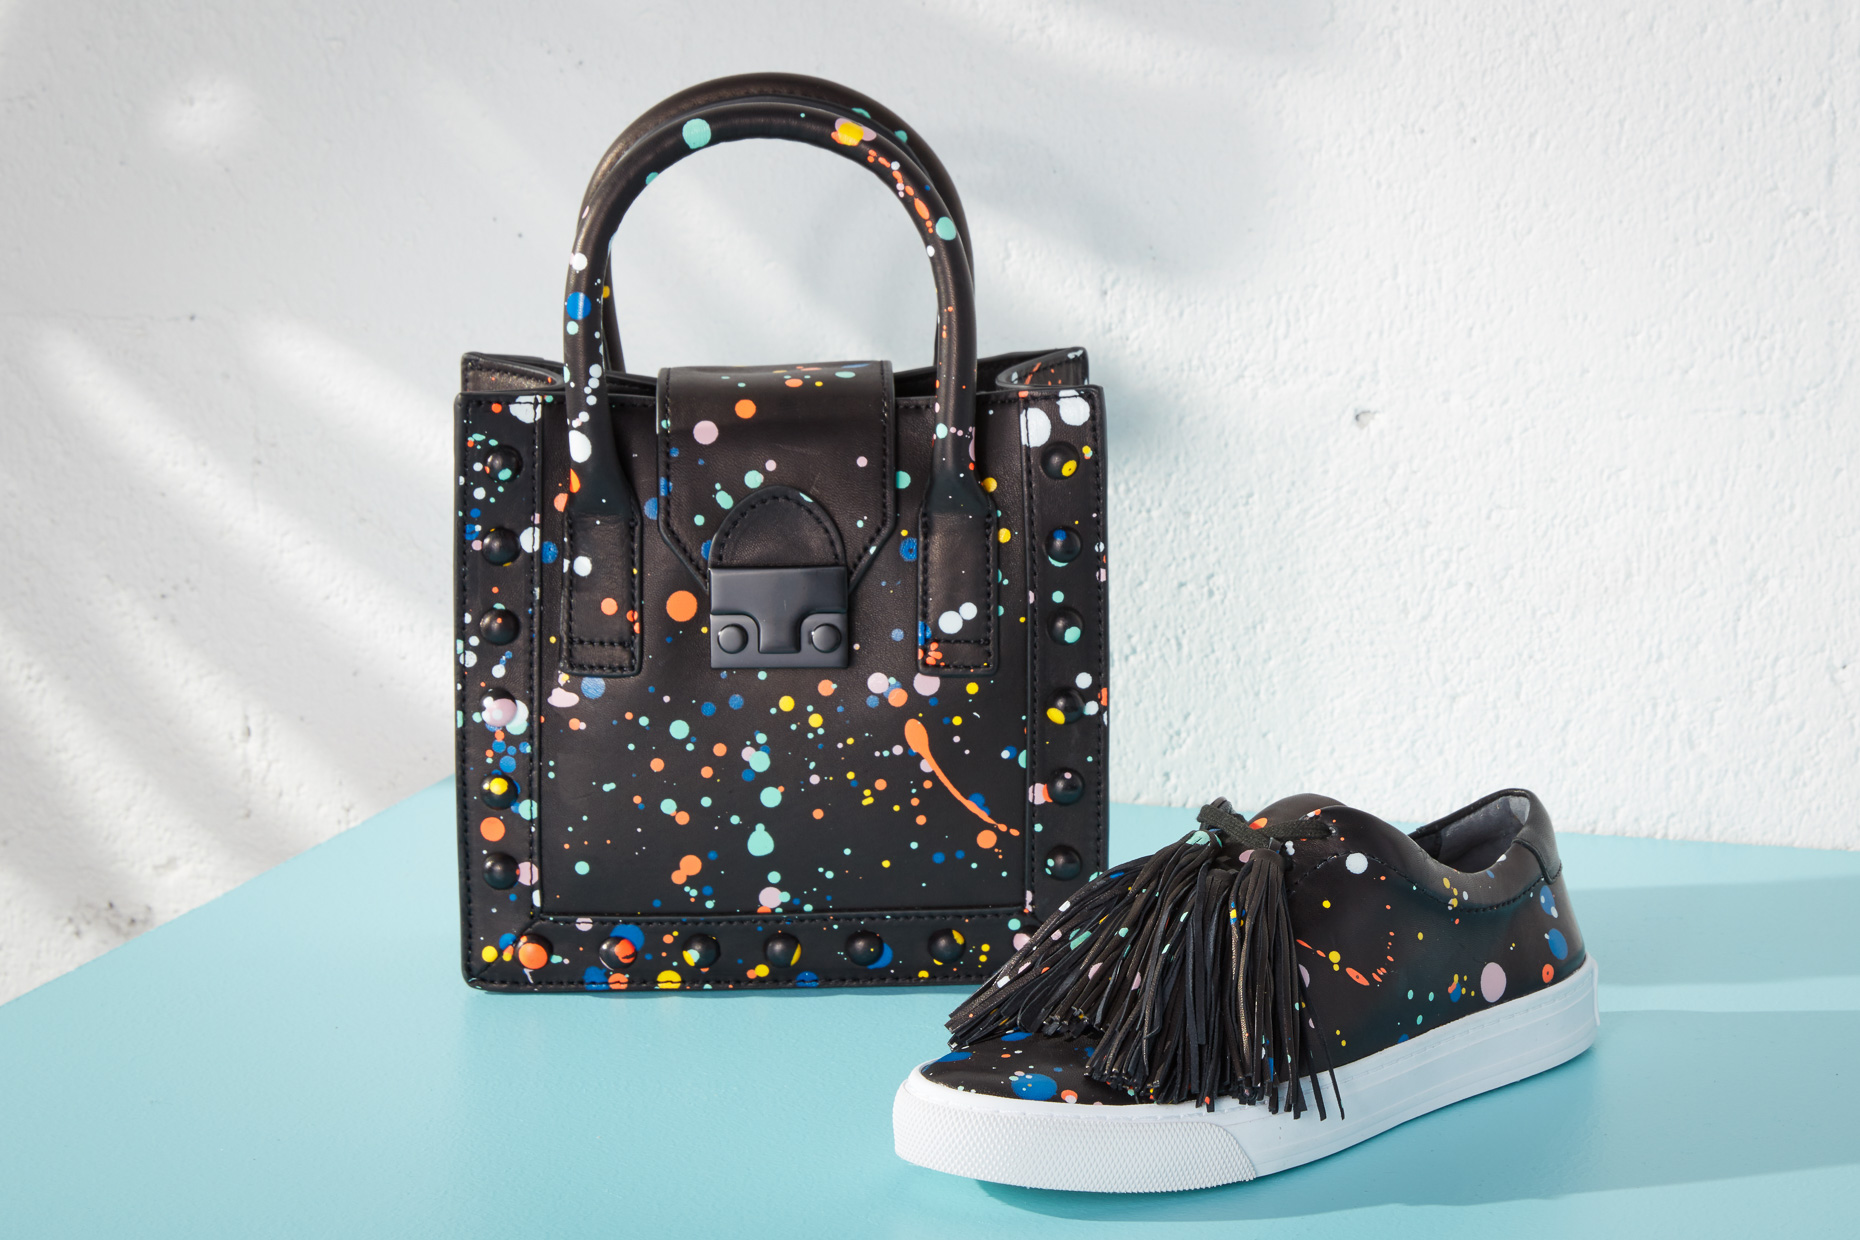 Bag_Sneakers_Tassels_Splatter_Paint